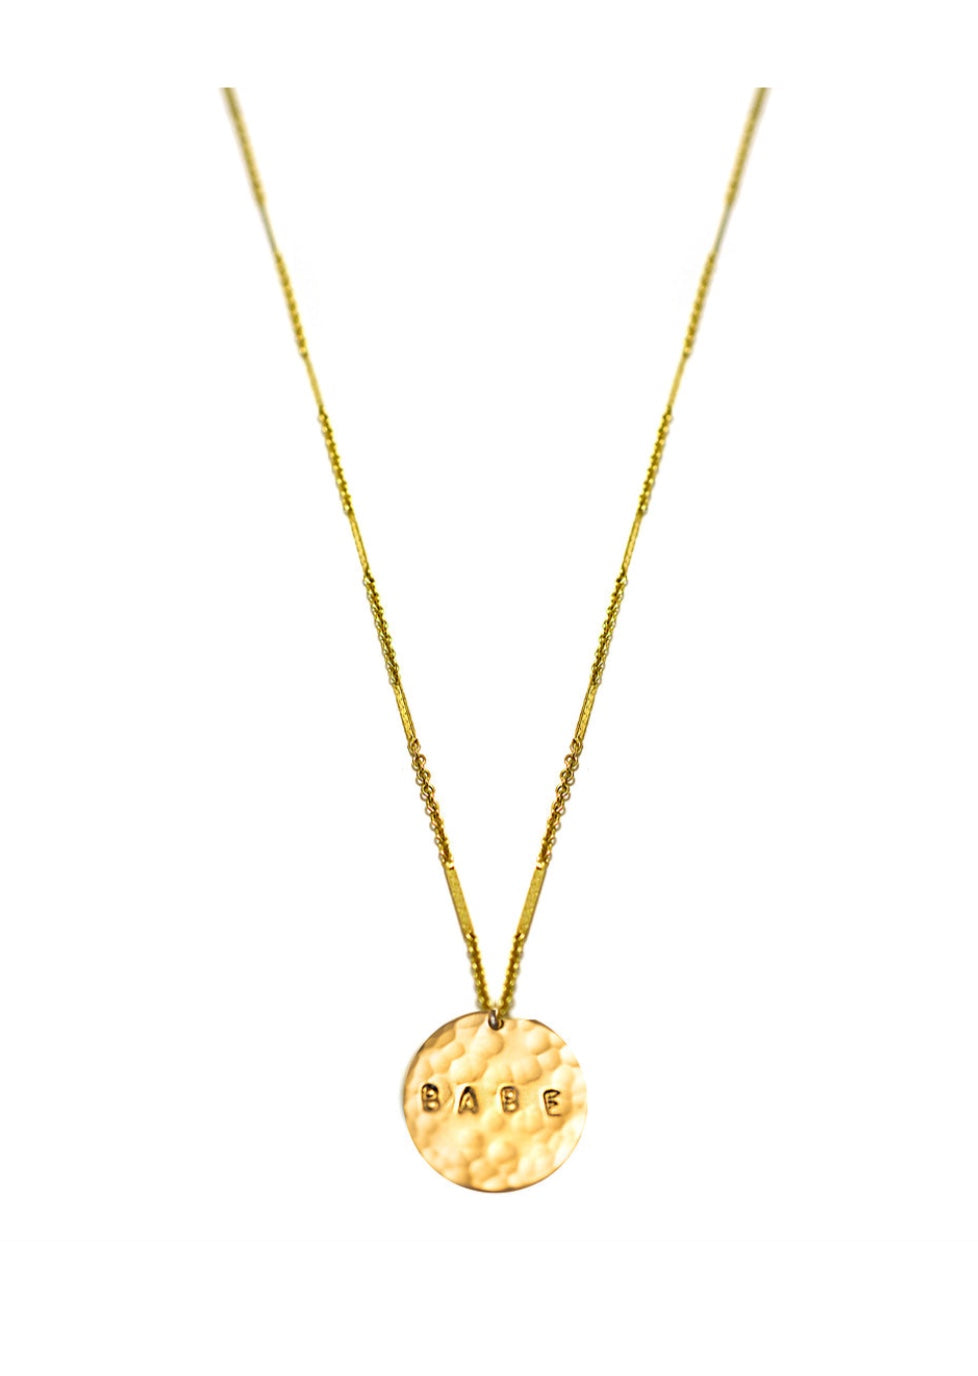 Babe Coin Necklace